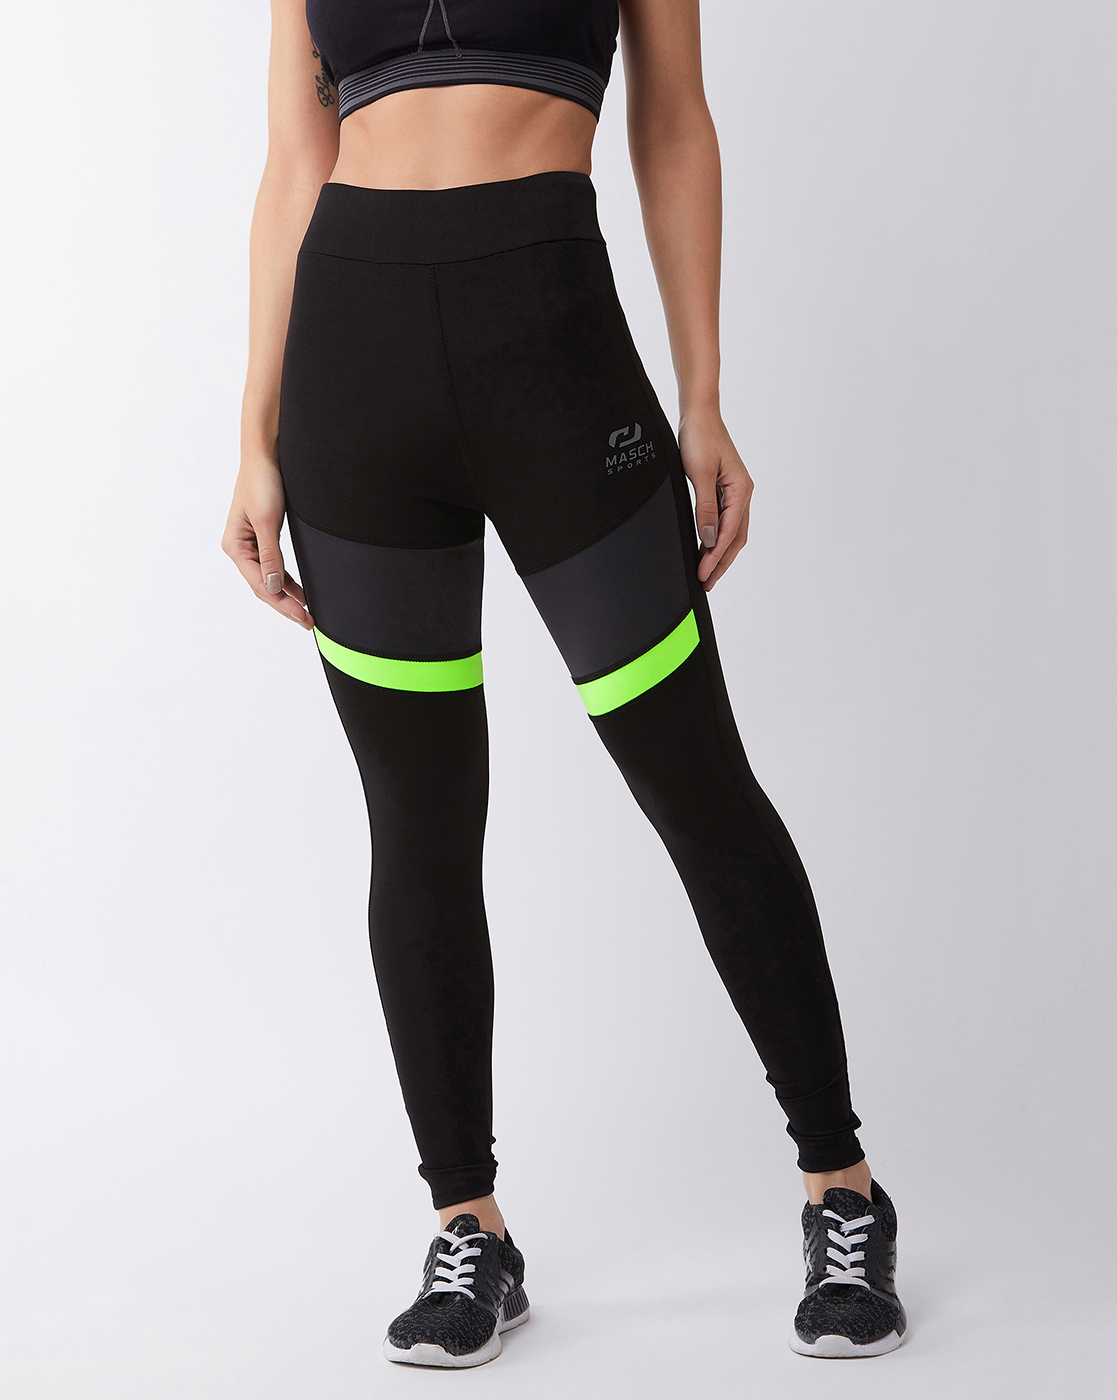 Masch Sports   Masch Sports Women's Black Solid Sports Tights with Dual Colour Grey and Fluorescent Neon Thigh Panel